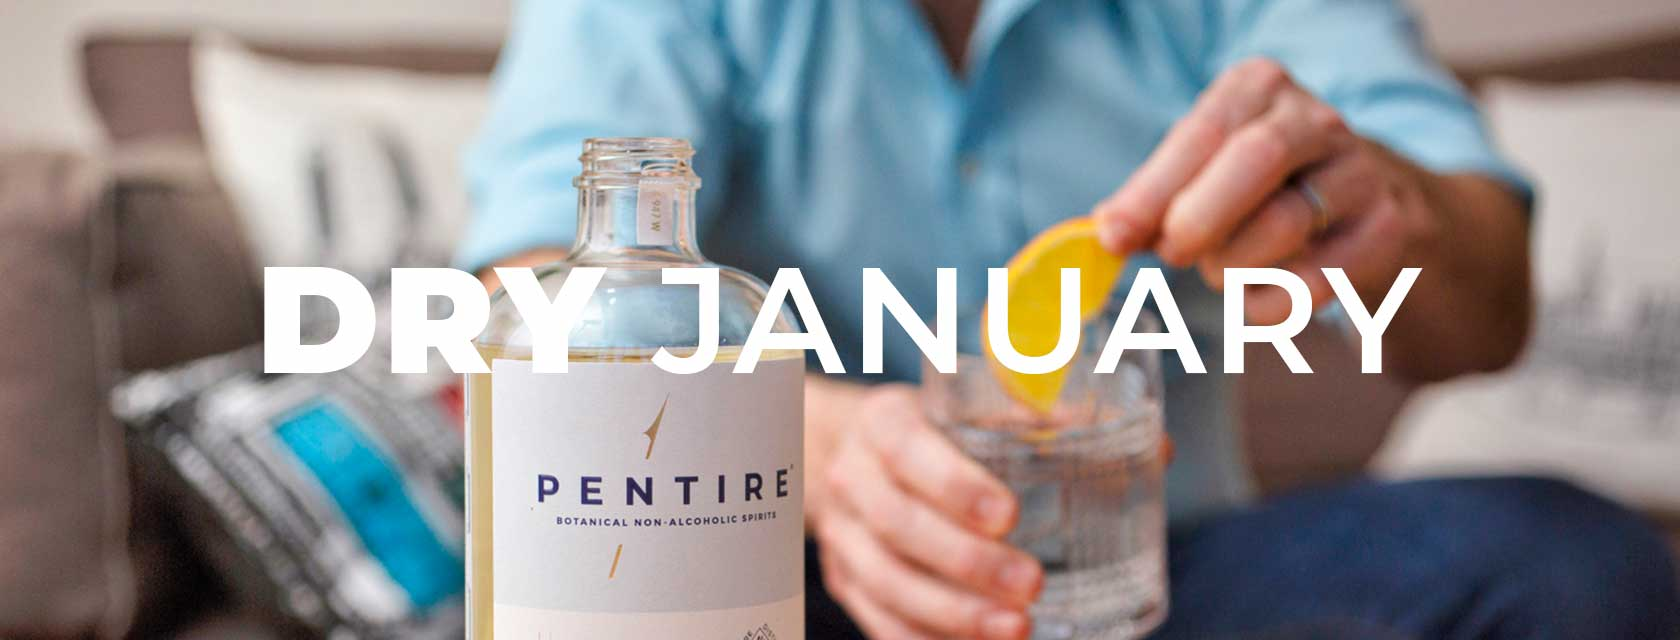 Dry January Promo Banner Image